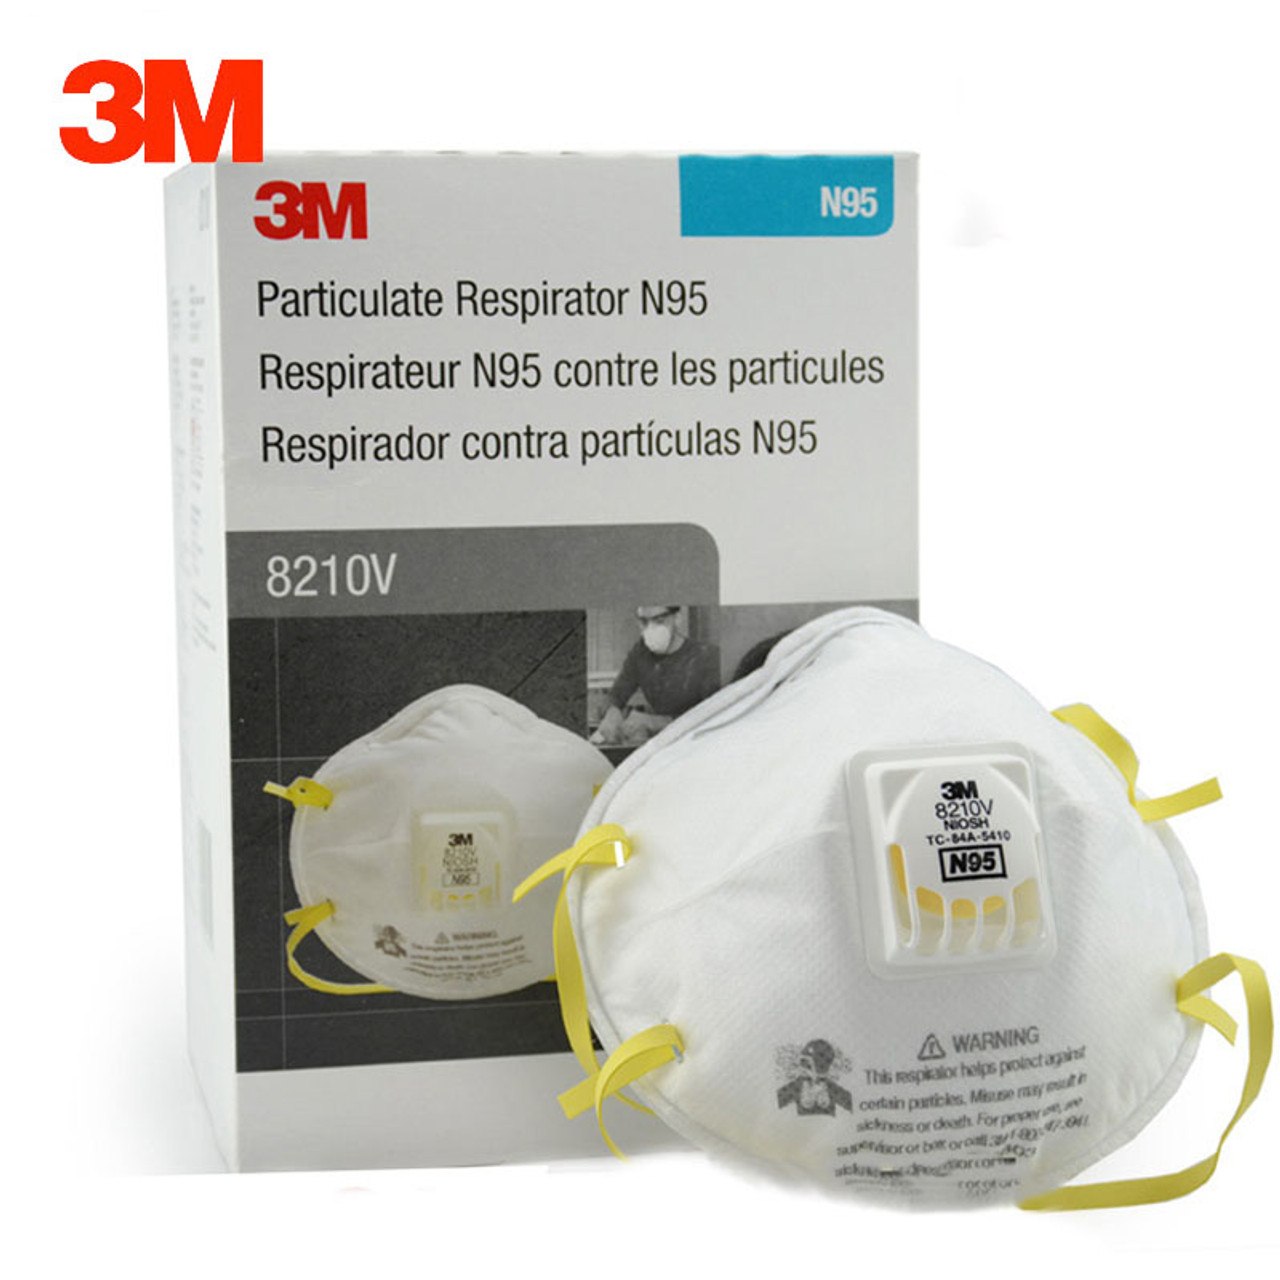 Mask N95 Dust box Industrial Particulate Safety Particles Anti-pm2 Respirator 3m Anti 10 8210v Masks Pcs Dustproof 5 Breathing